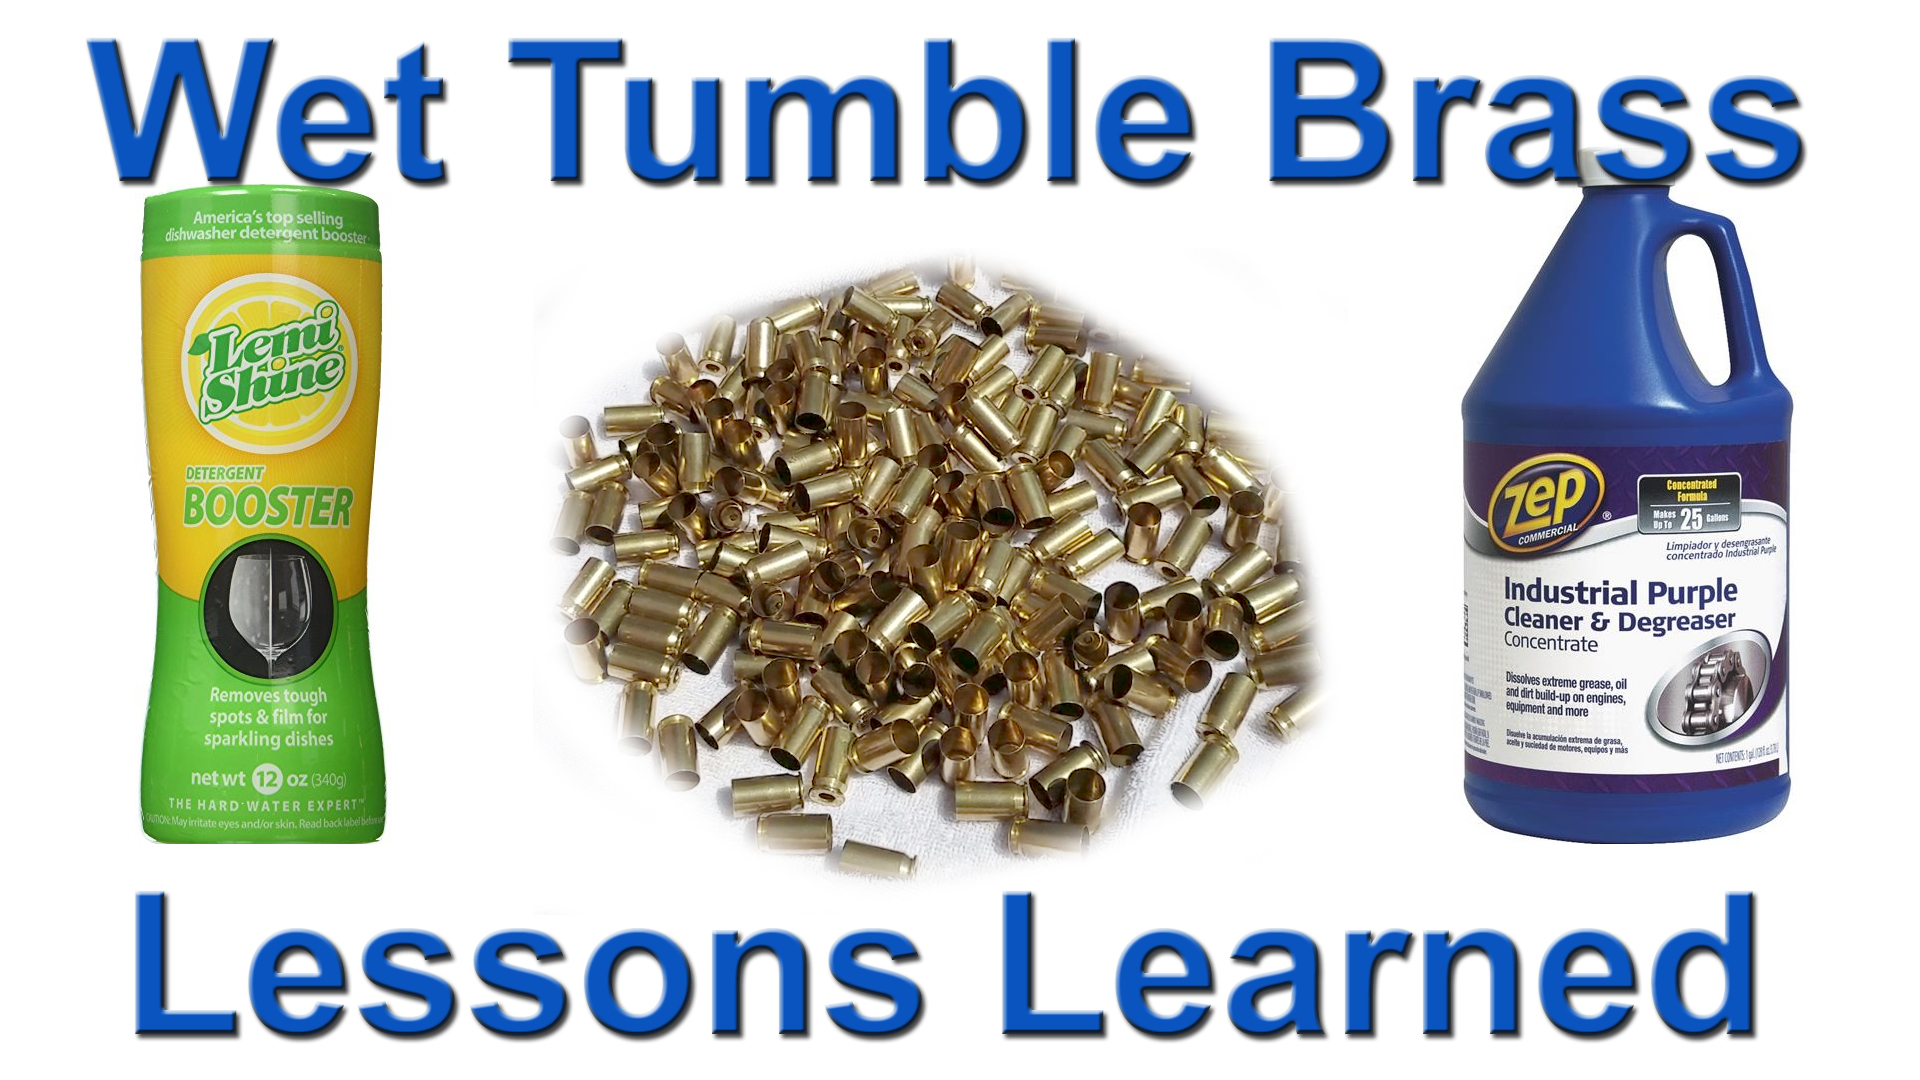 Wet tumbling brass lessons copy